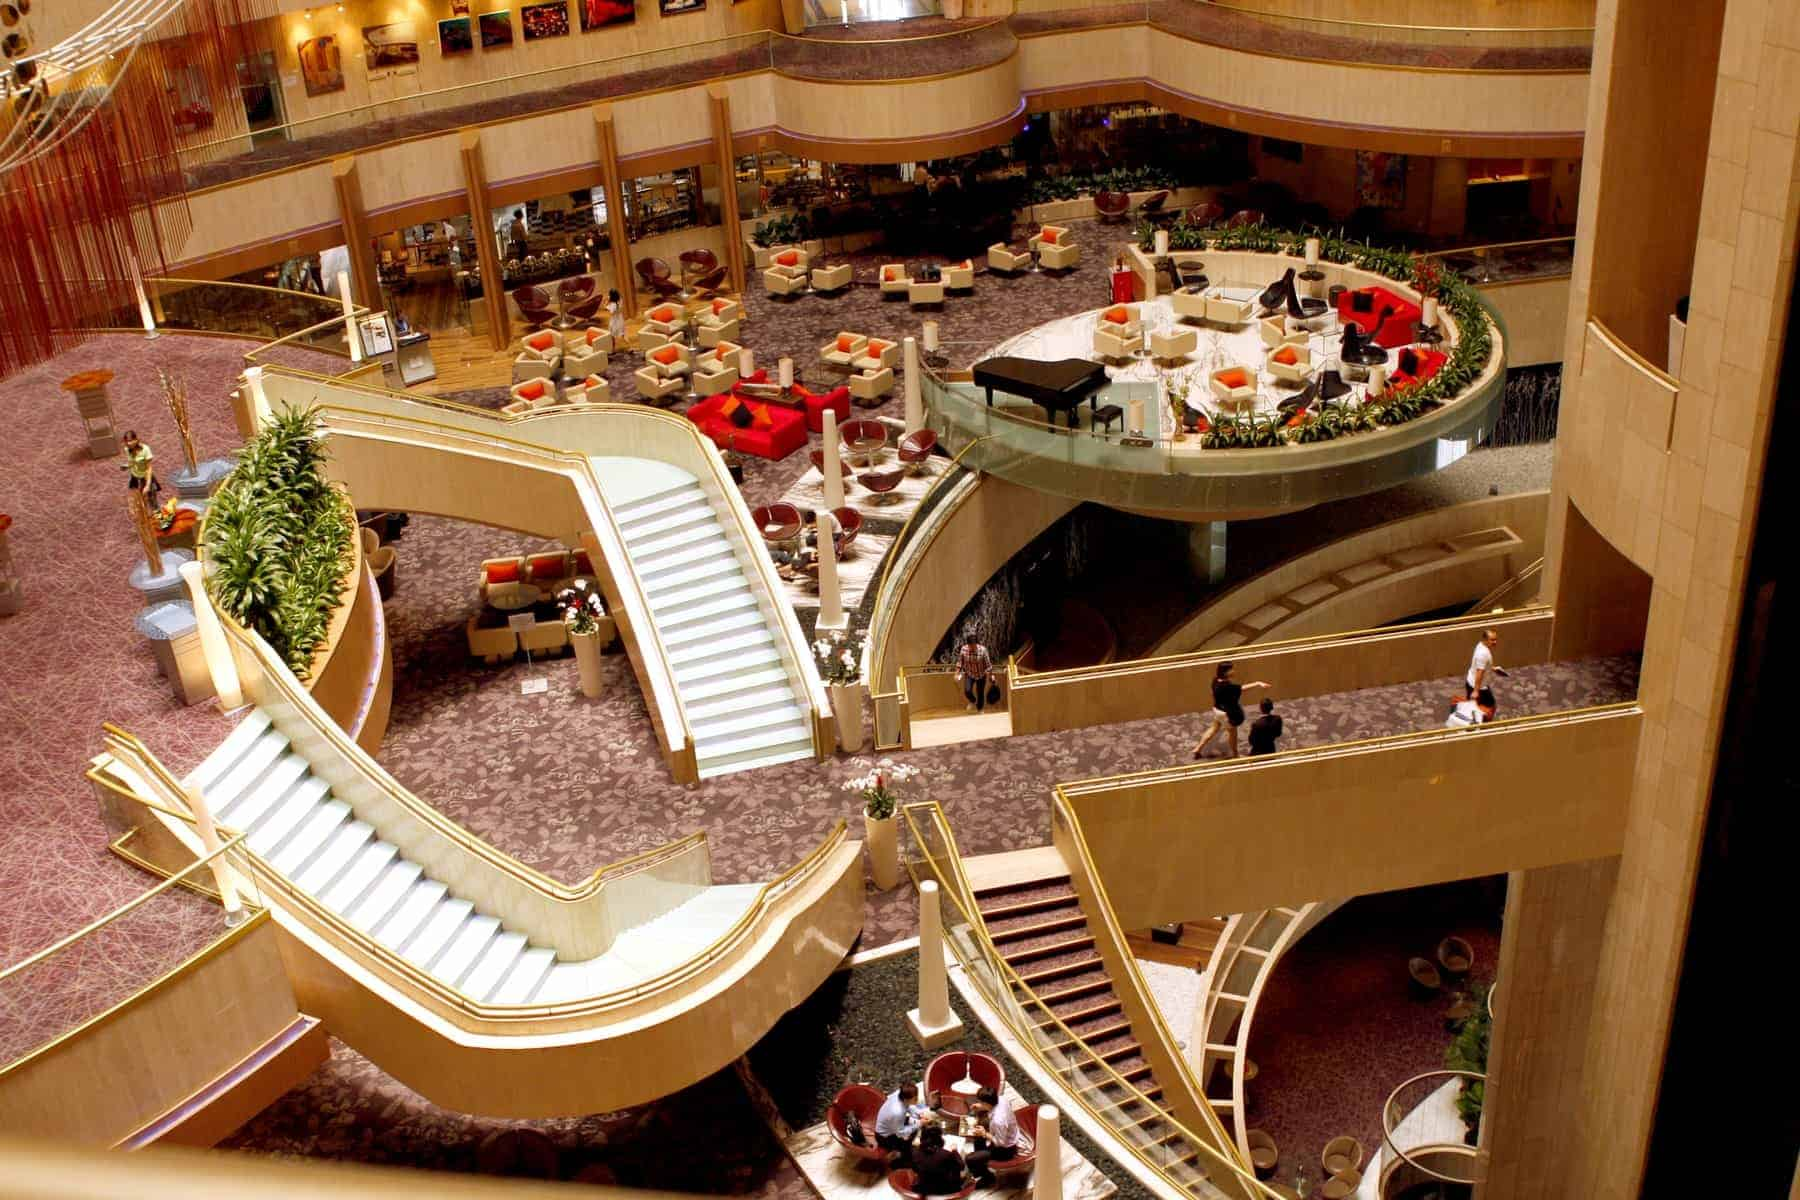 The huge interior hall and stairs of the Mandarin Oriental Hotel in Singapore in south east Asia.